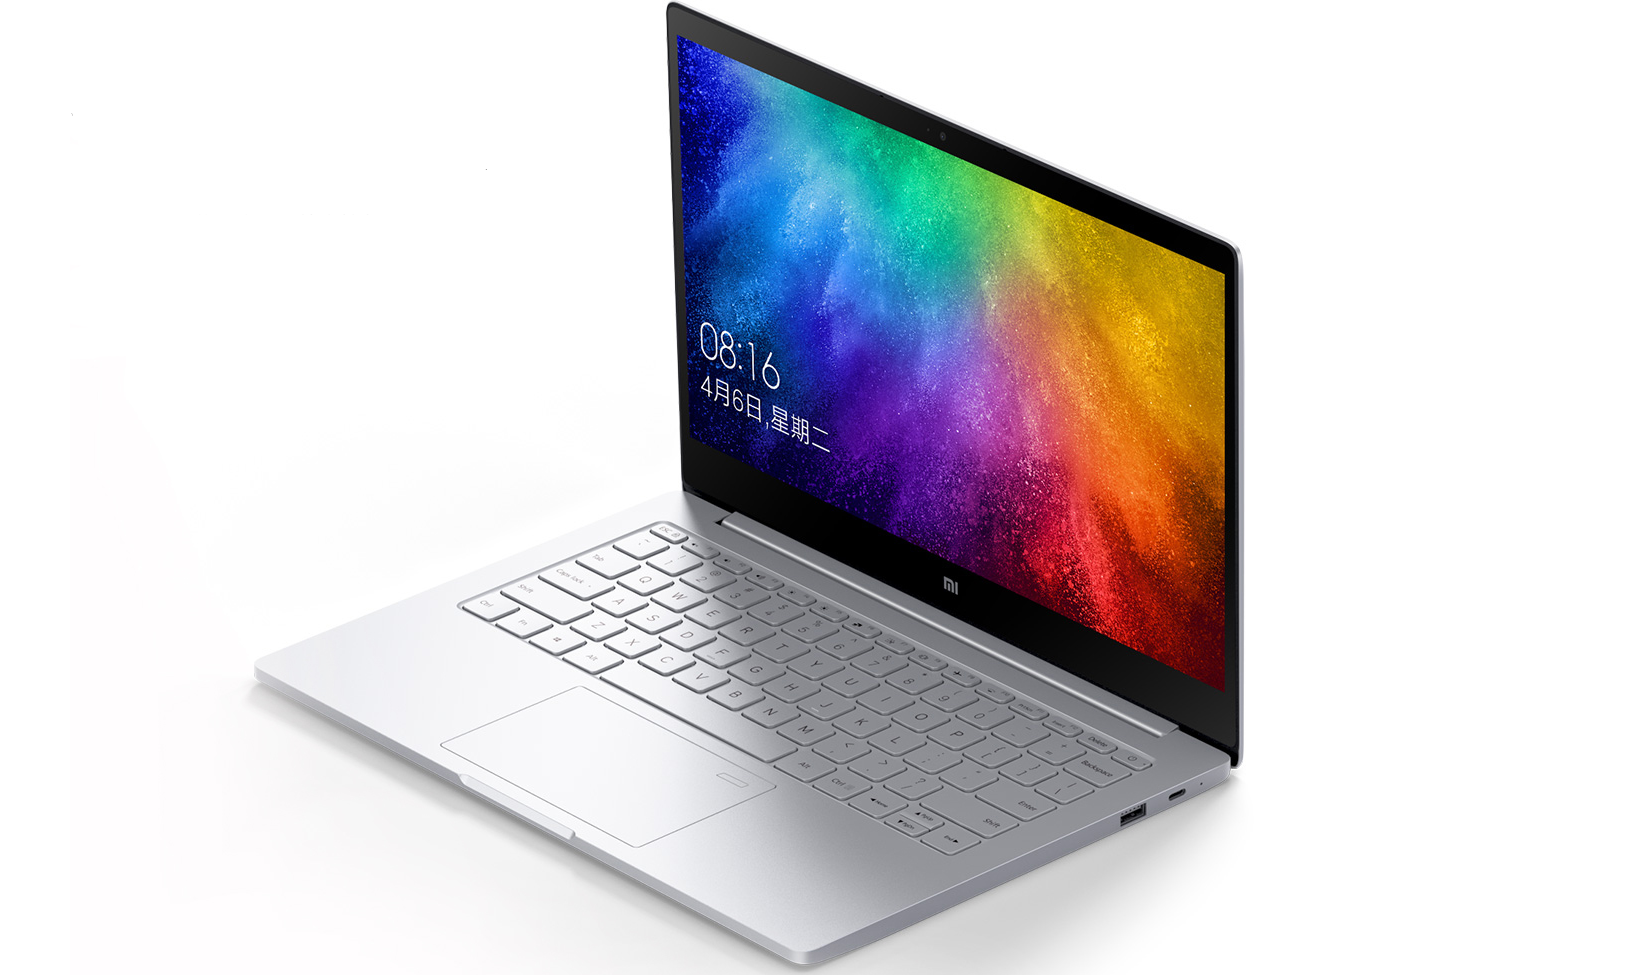 Xiaomi Mi Air Notebook i7 8550U 8 / 256 GB MX150 - Banggood